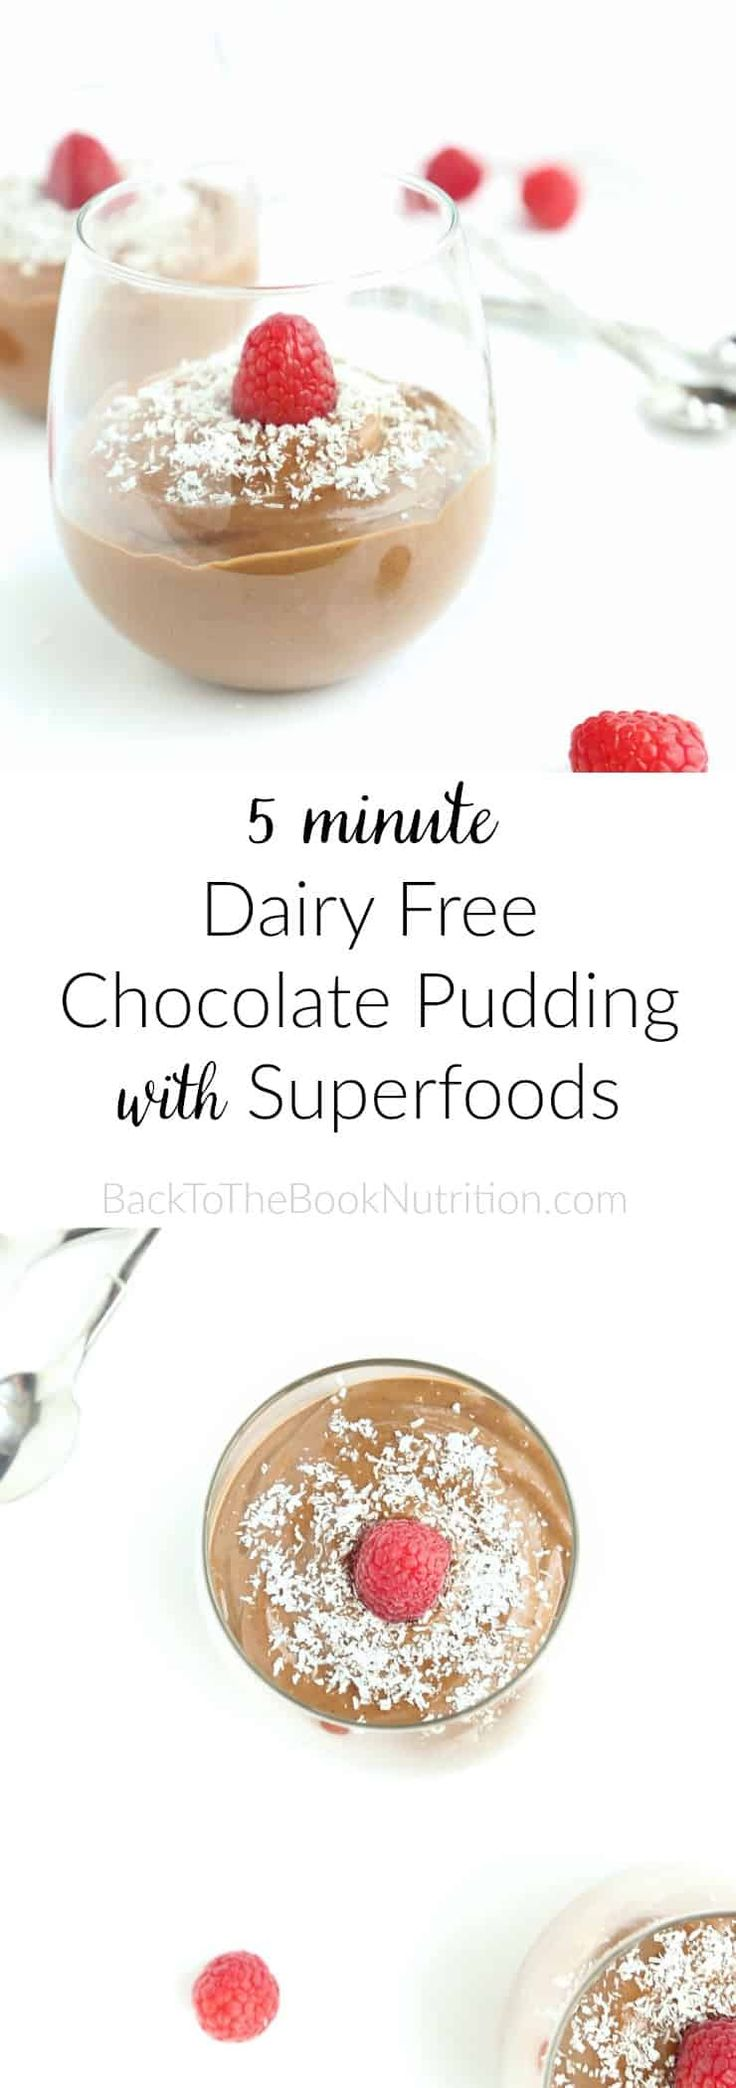 5 minute Dairy Free Chocolate Pudding with superfoods! Refined sugar free, gluten free, peanut free, full of rich chocolate flavor!   Back To The Book Nutrition